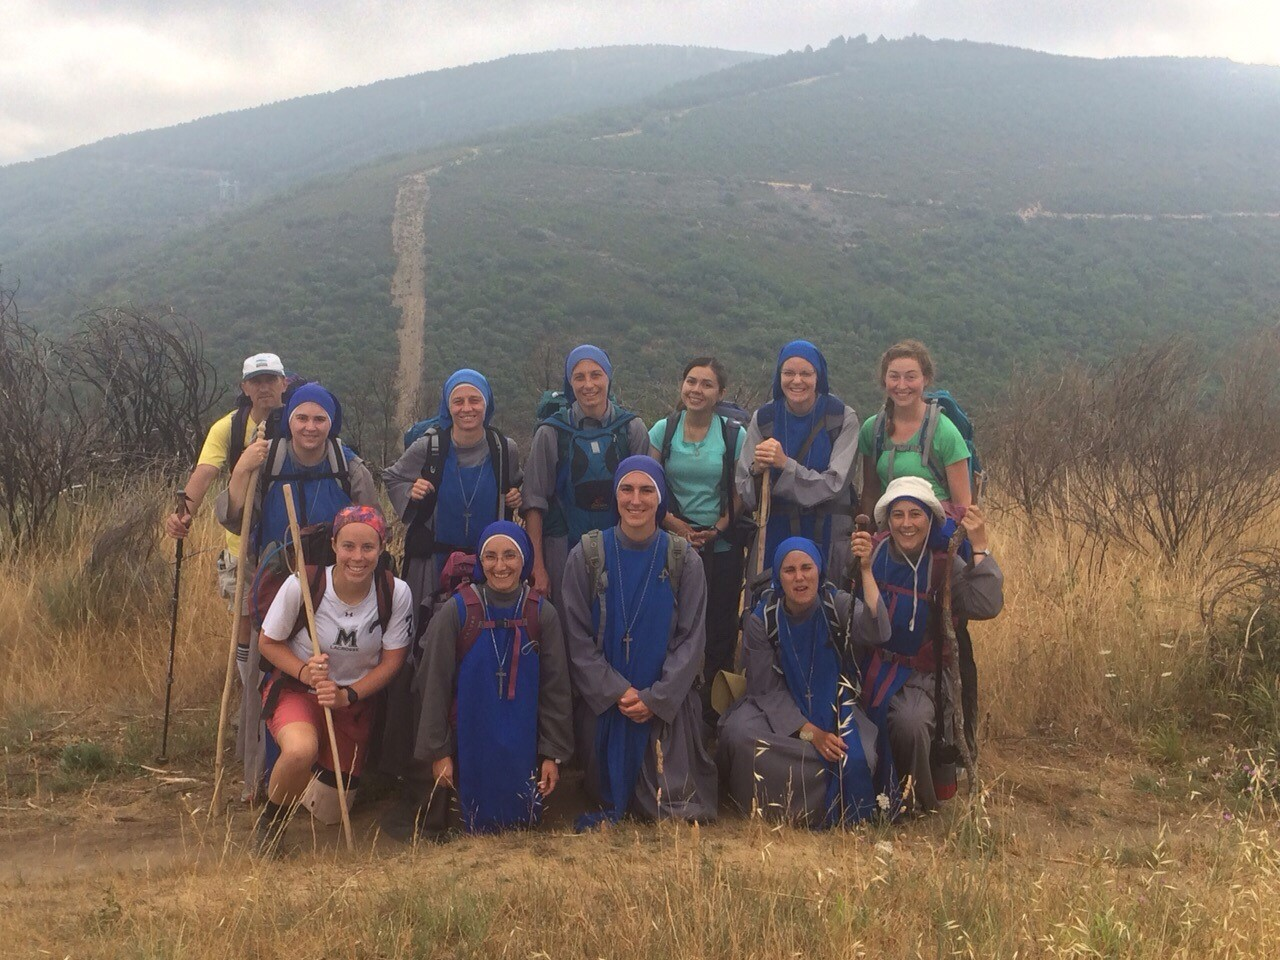 Servants of the lord and of the virgin of matará SSVM pilgrimage to el camino de santiago (IVE missionary sisters).